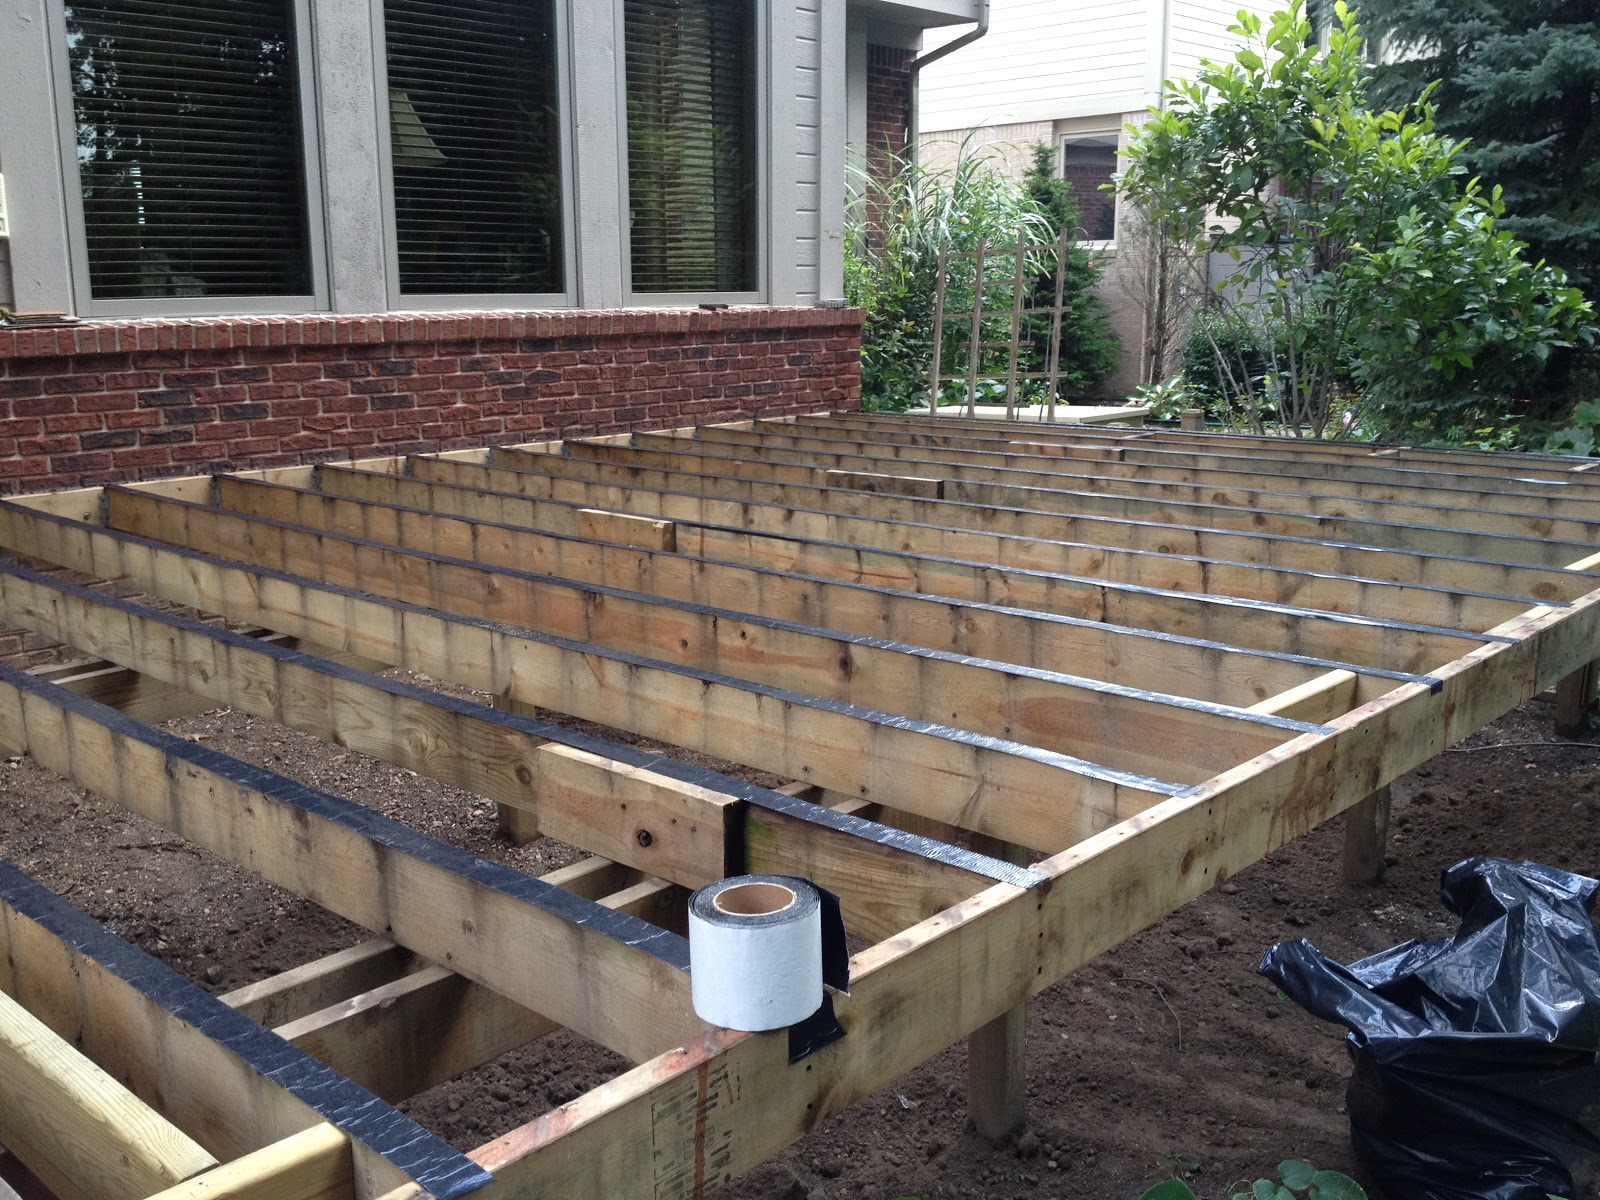 Outdoor Living: Replace Your Decking